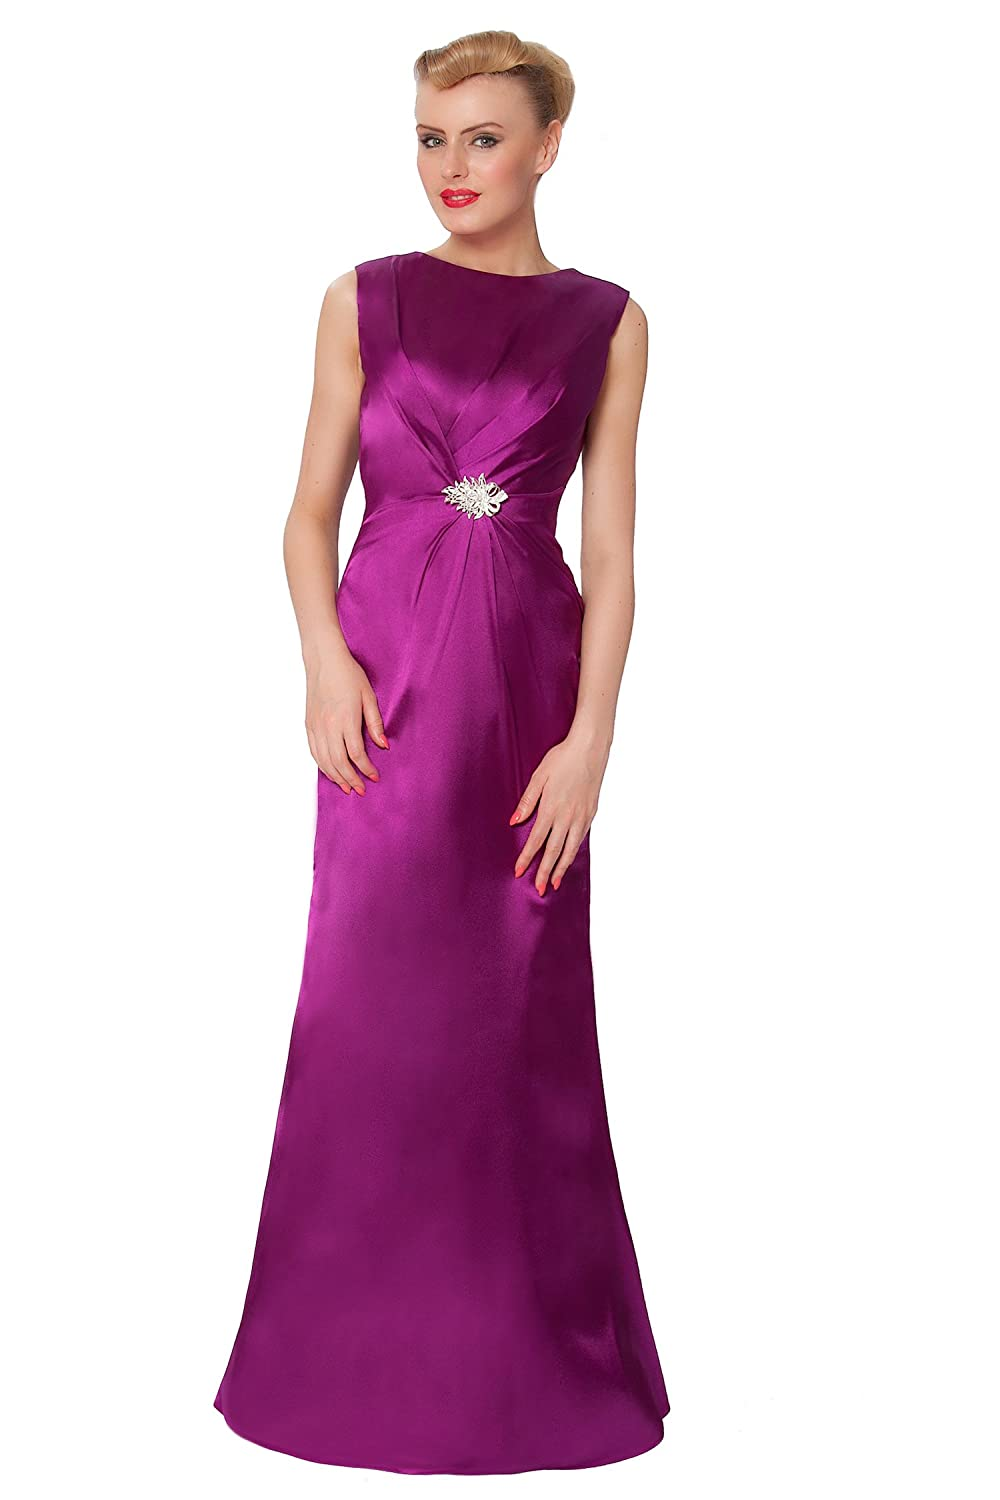 SEXYHER Gorgeous Full Length Bridesmaids Formal Evening Dress - EDJ1609